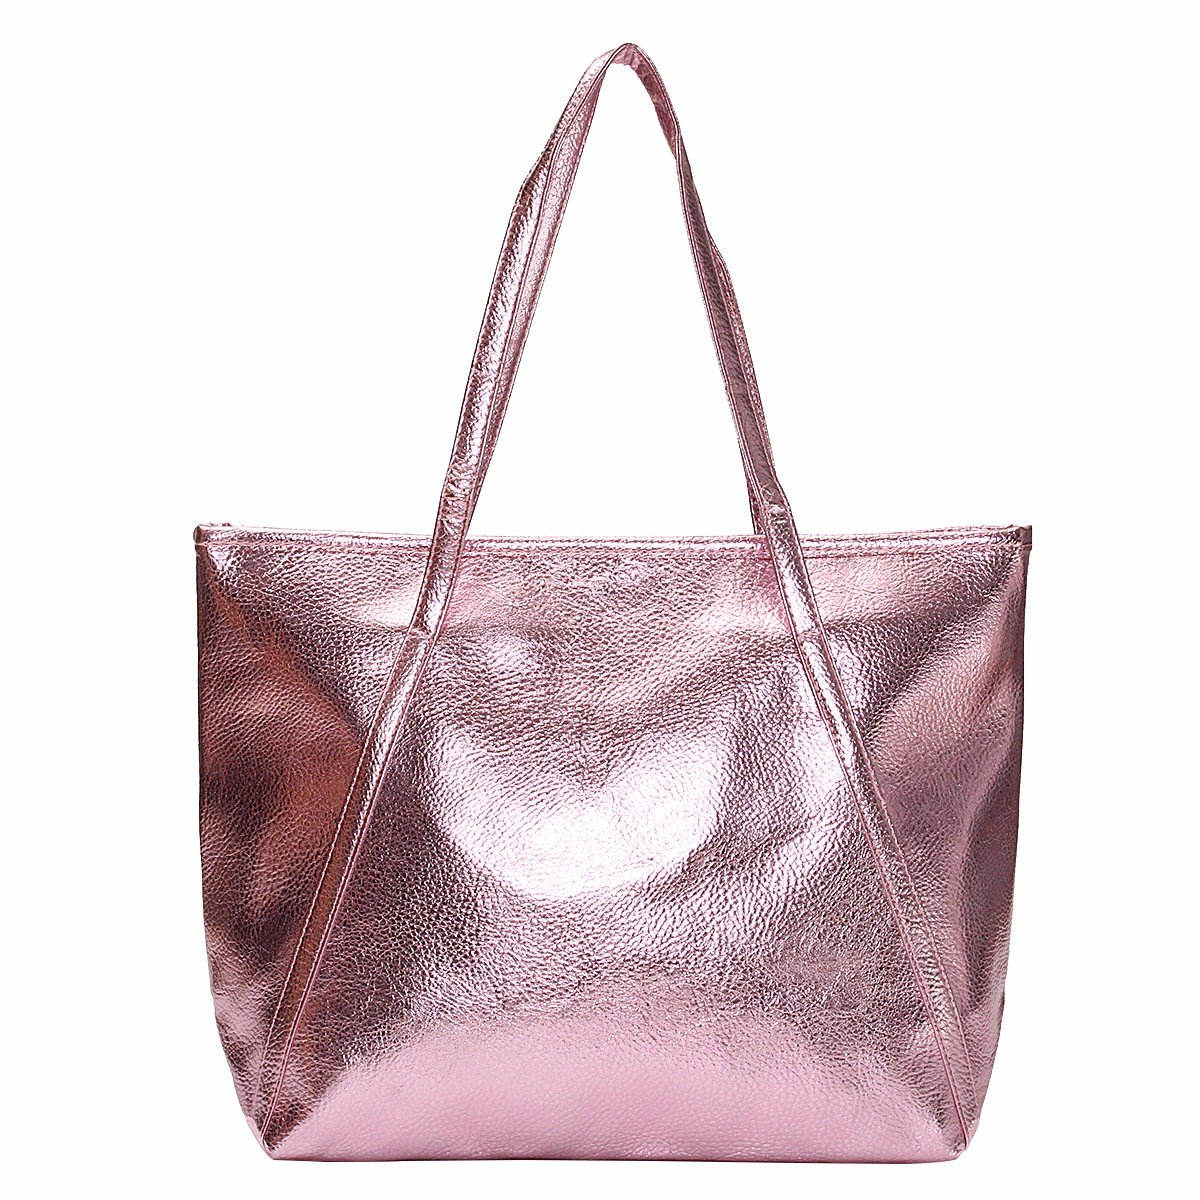 9fb3f77c5c46 Amazon.com: Women's Tote Handbags - OURBAG Large Fashion Designer Elegant Shoulder  Bag Purses for Ladies Pink: Clothing